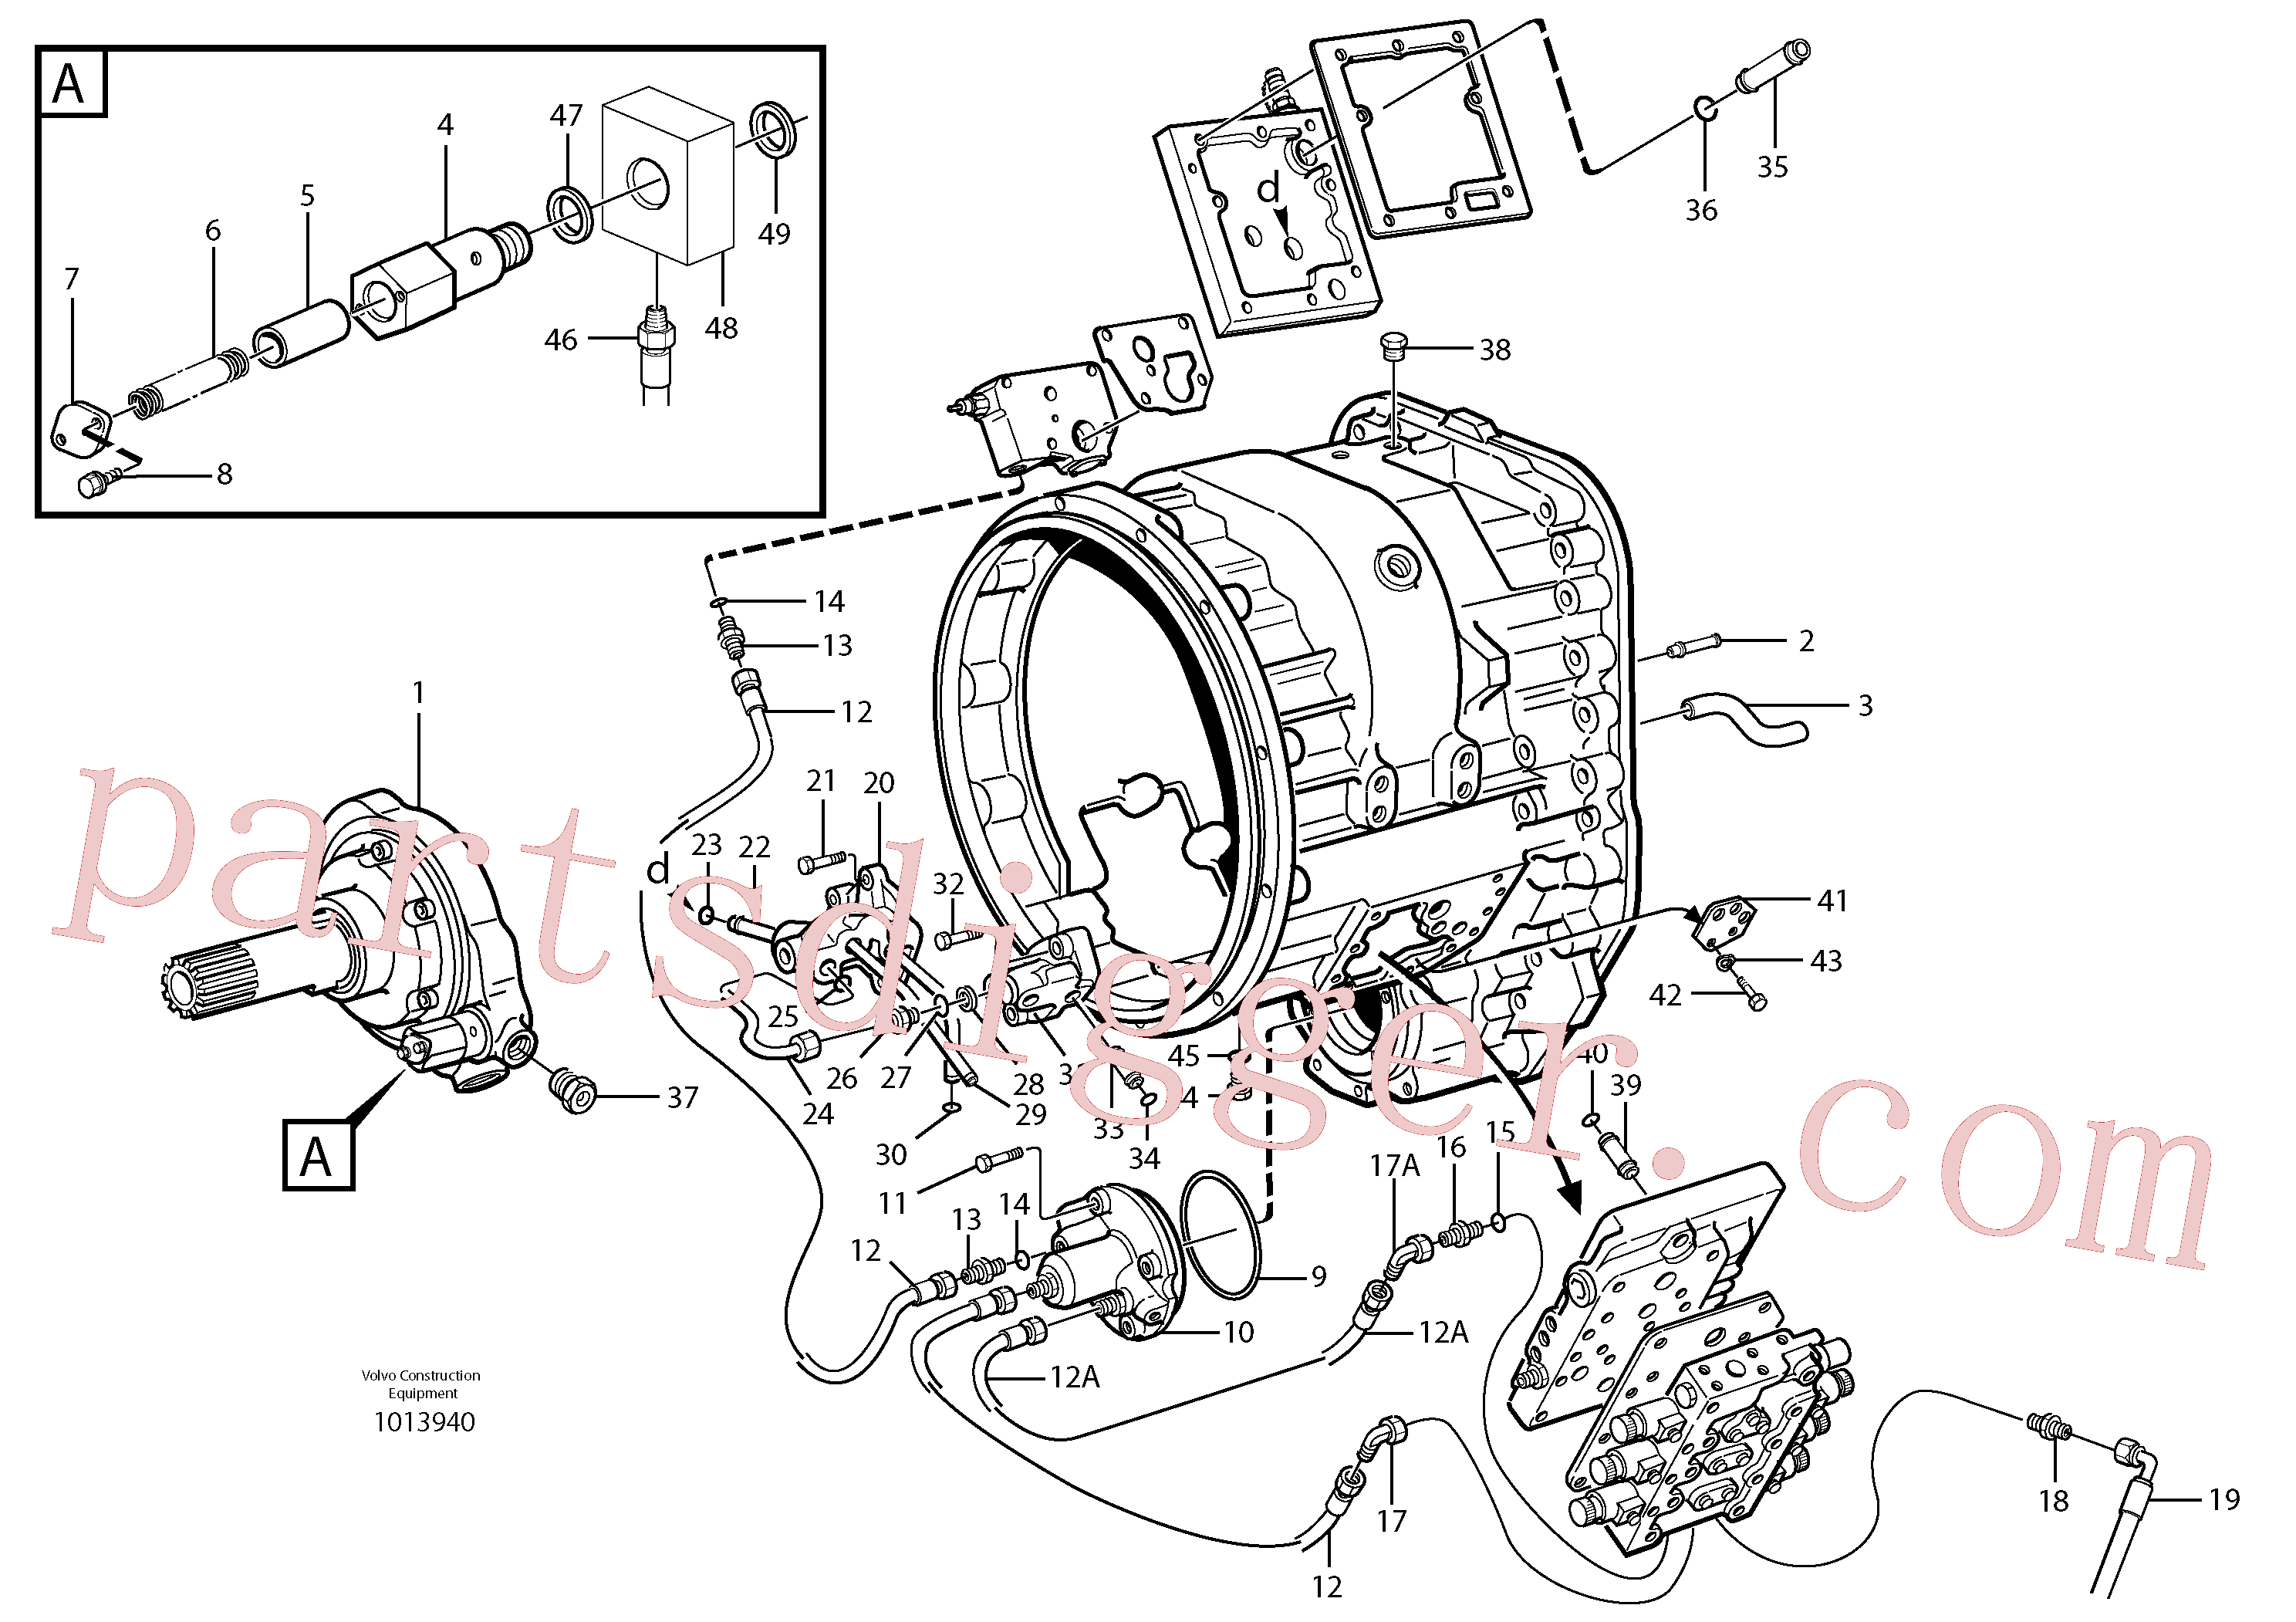 VOE925263 for Volvo Oil distributor and tube.(1013940 assembly)